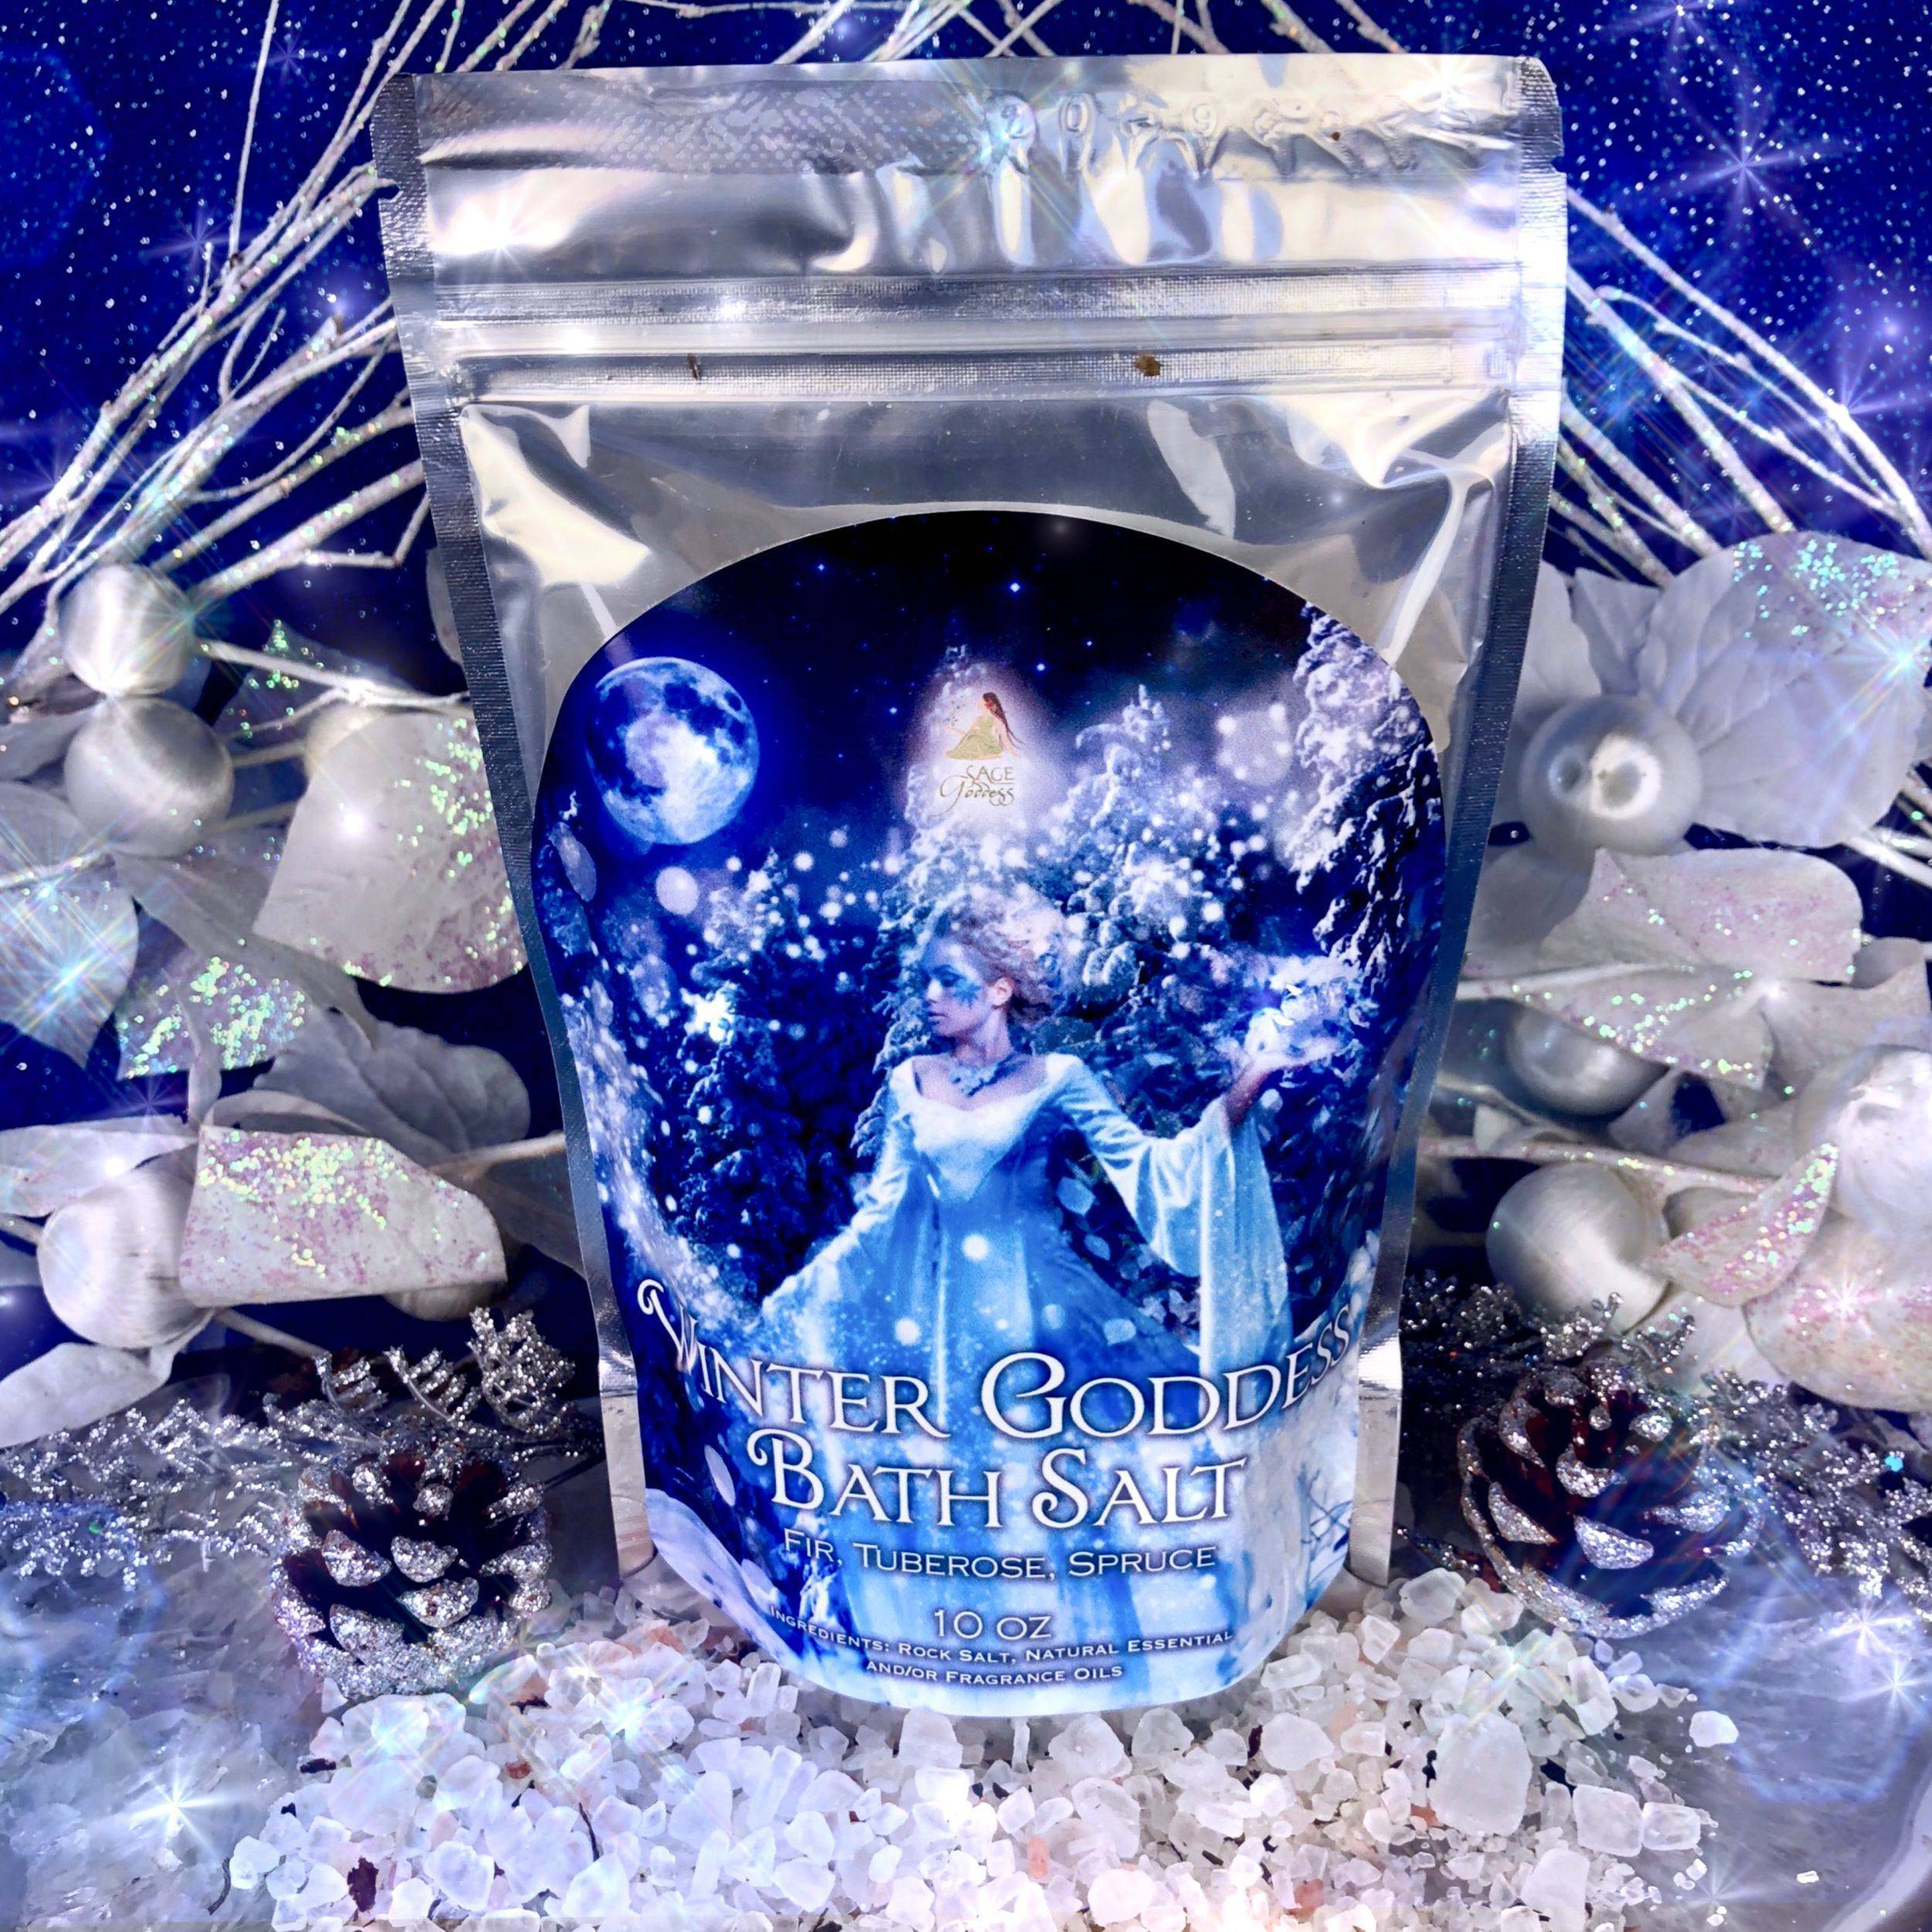 Winter_Goddess_Bath_Salts_1of1_11_3